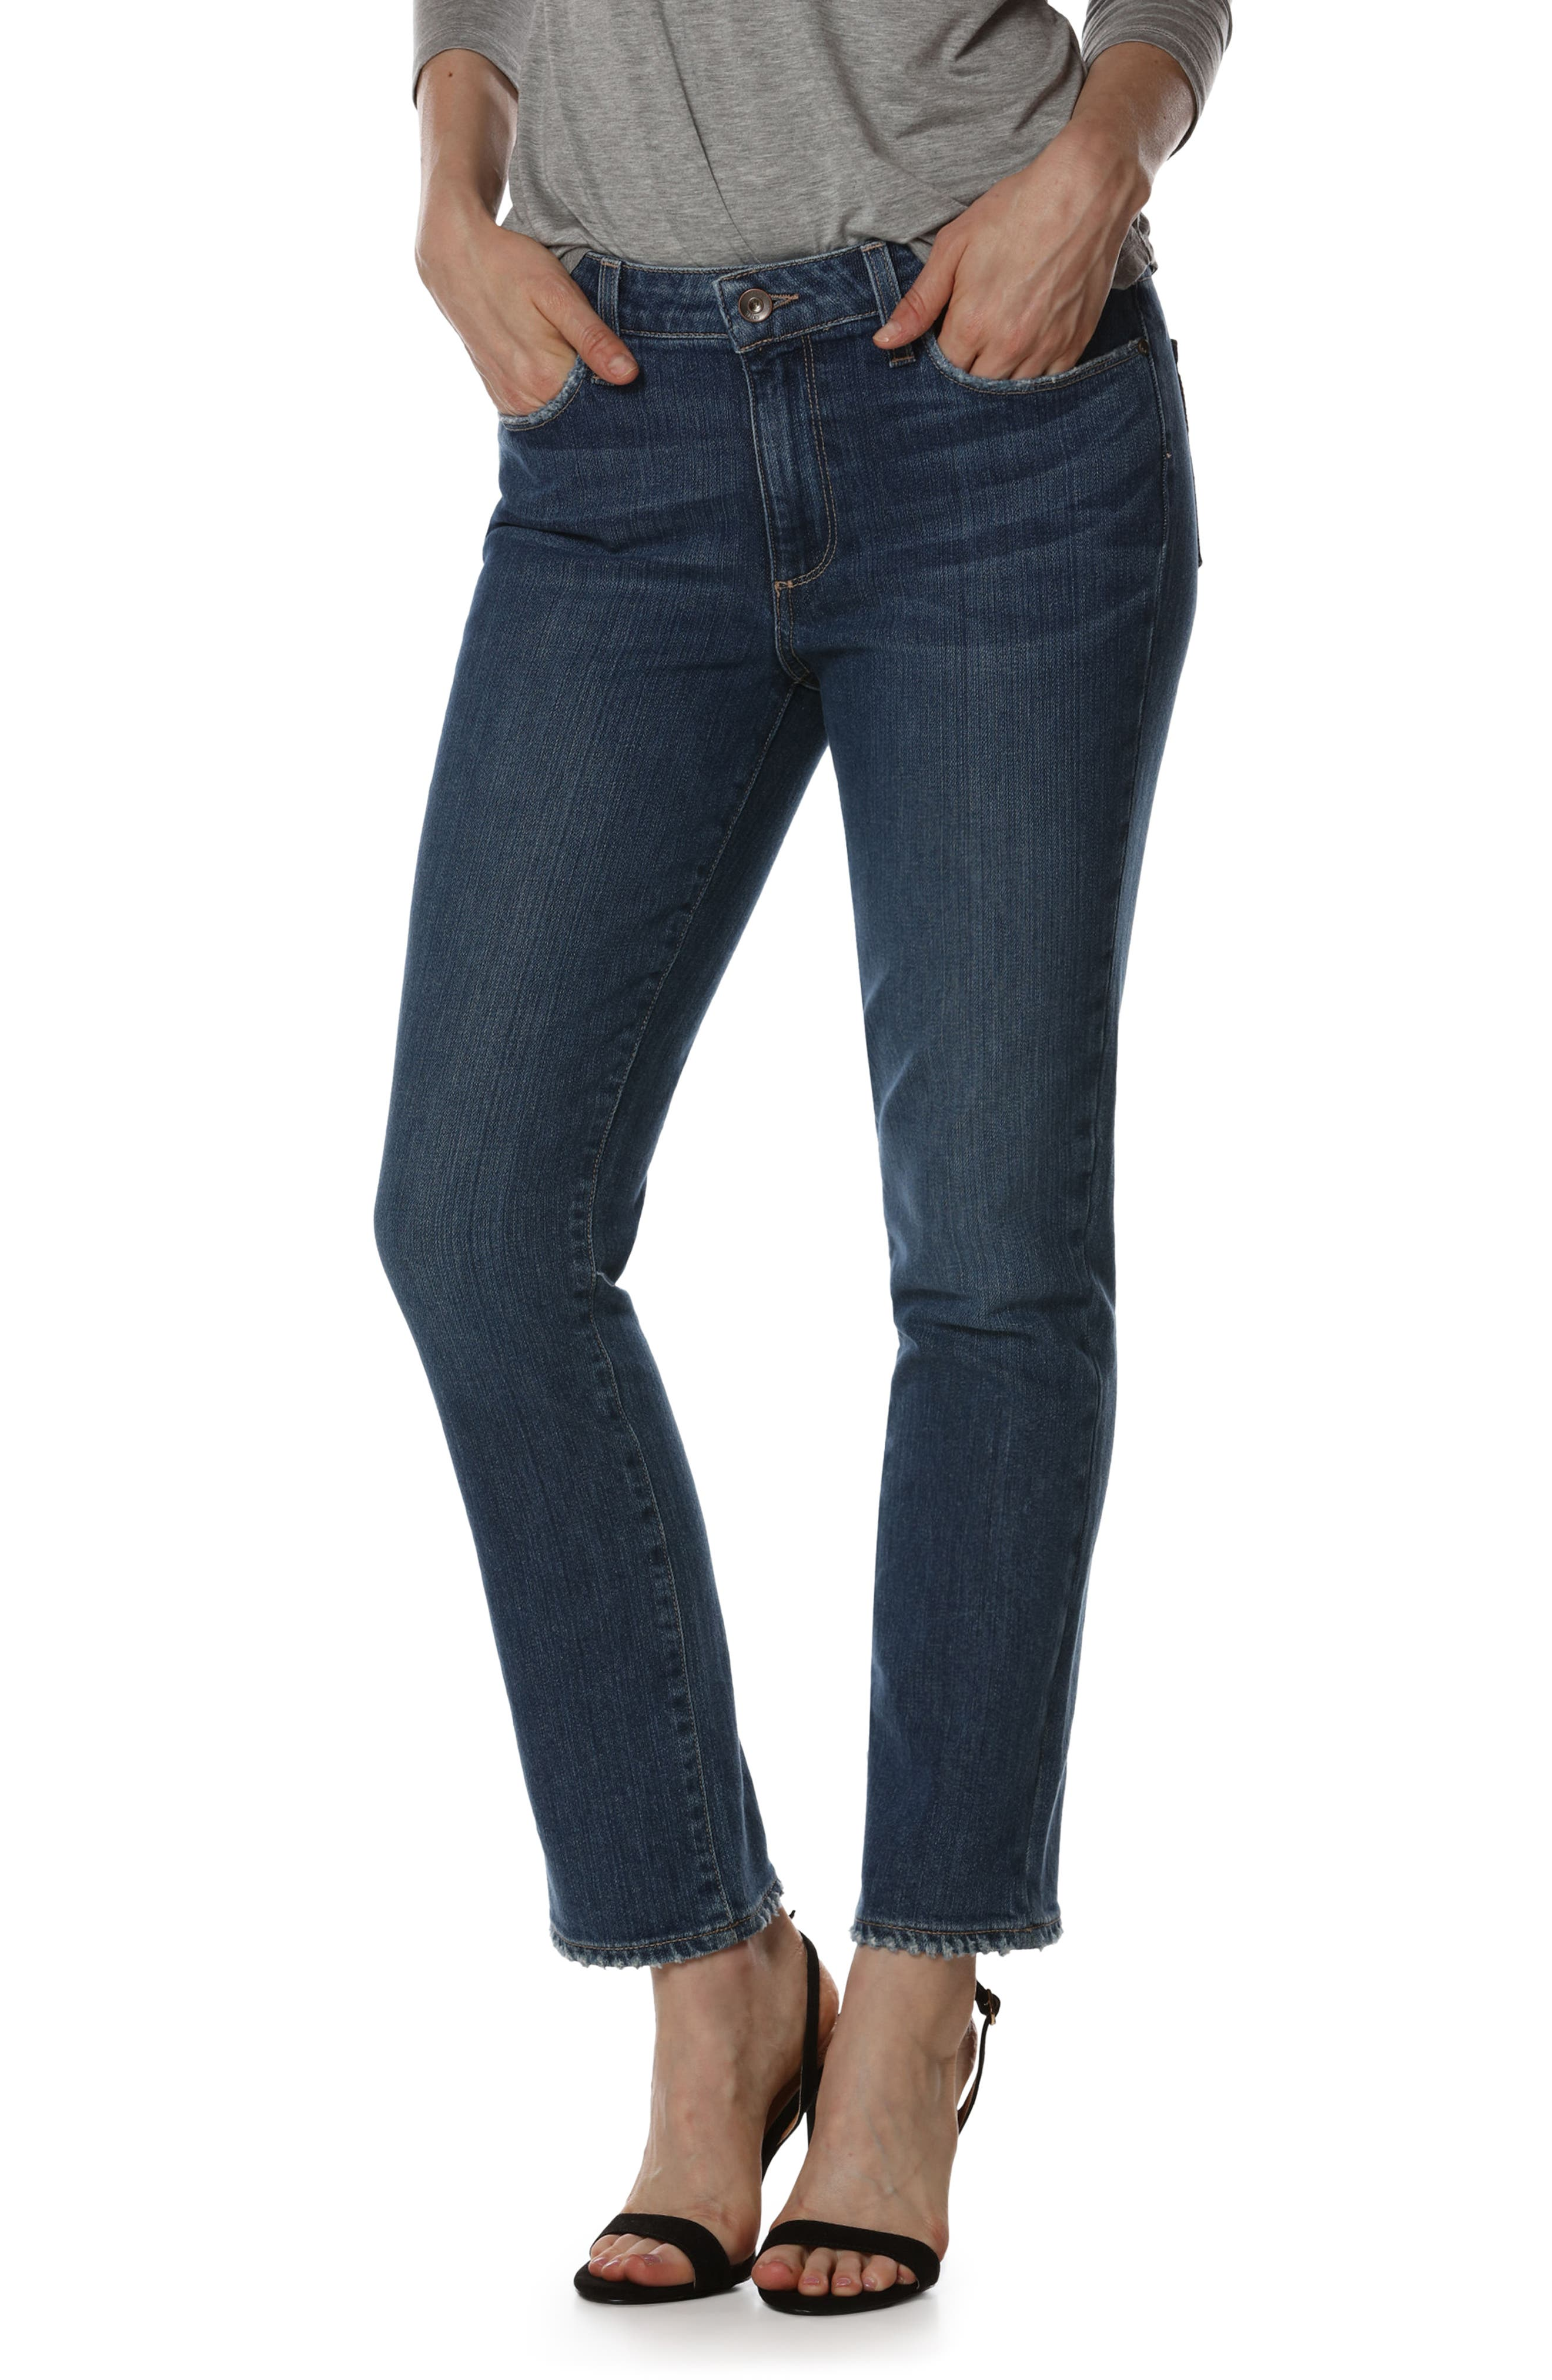 Alternate Image 1 Selected - PAIGE Jacqueline High Waist Ankle Straight Leg Jeans